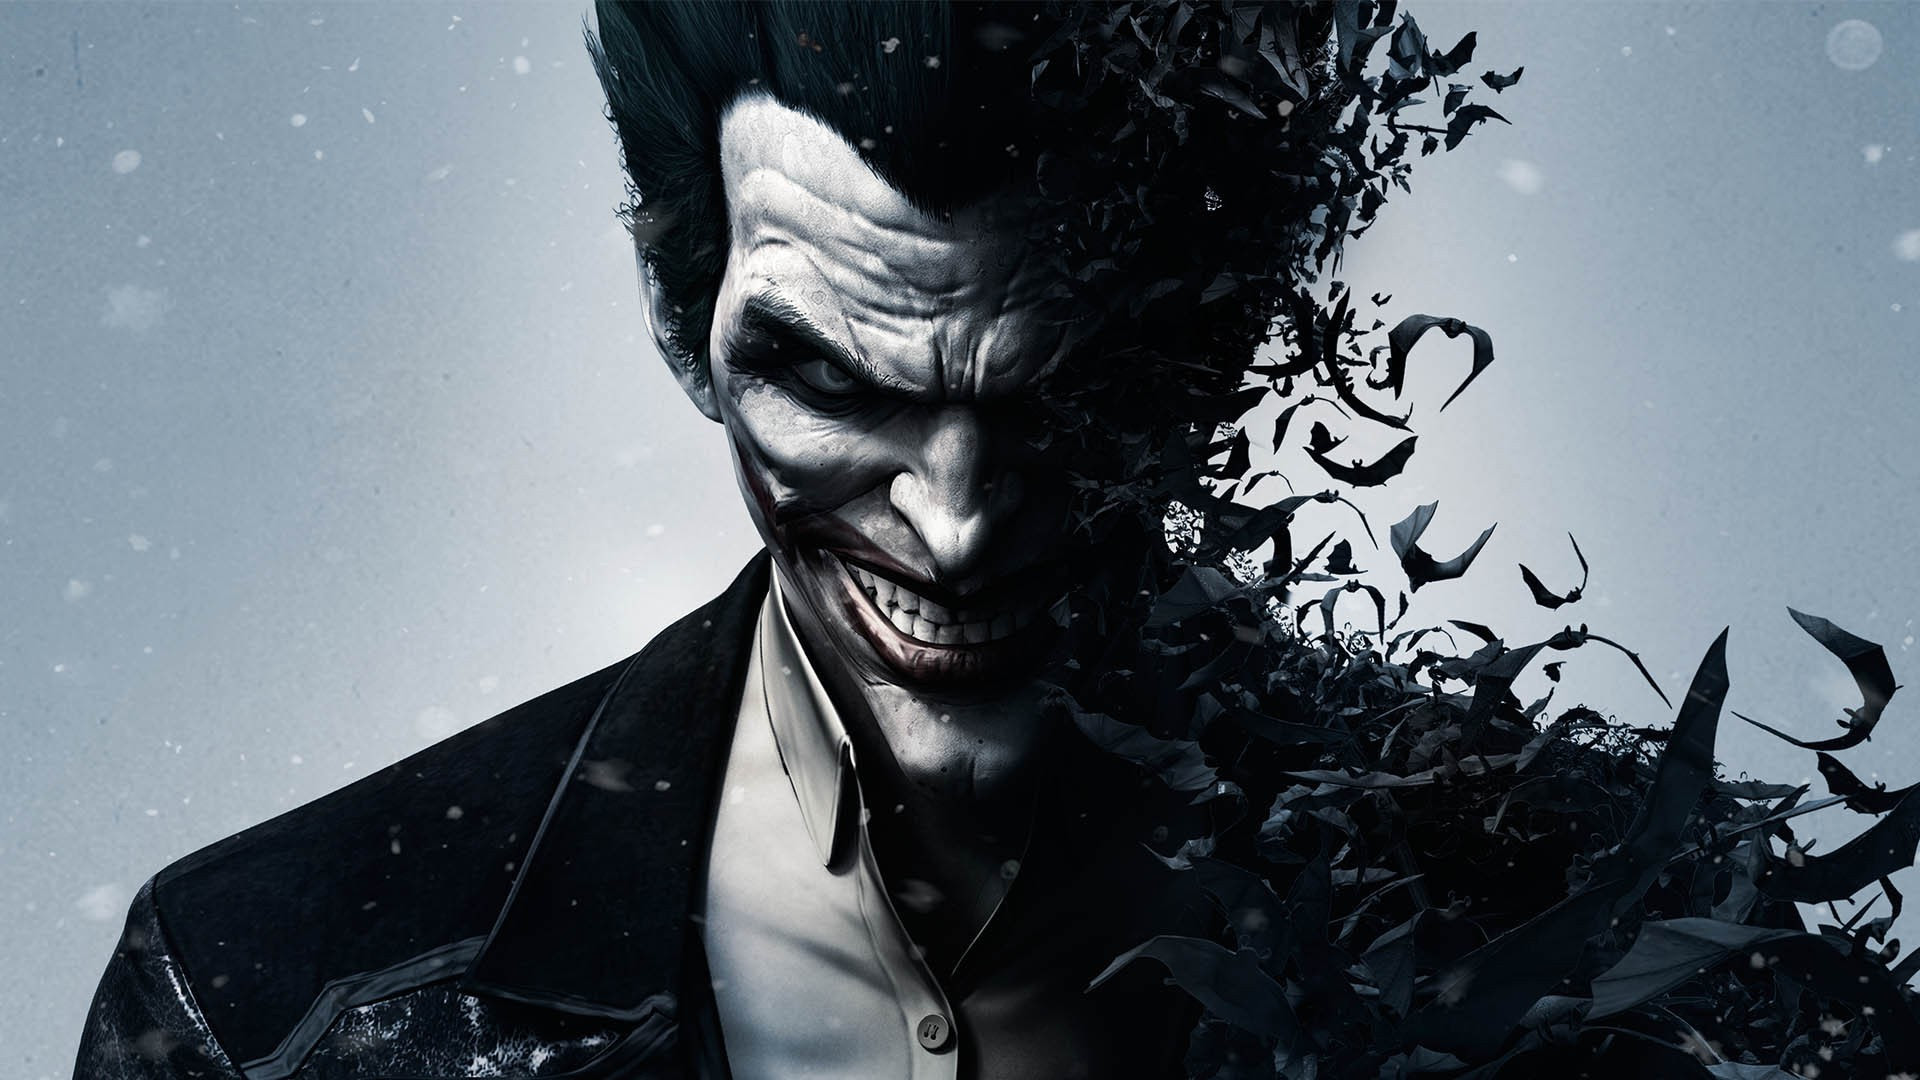 Download Wallpaper Joker Wallpaper Download 3d